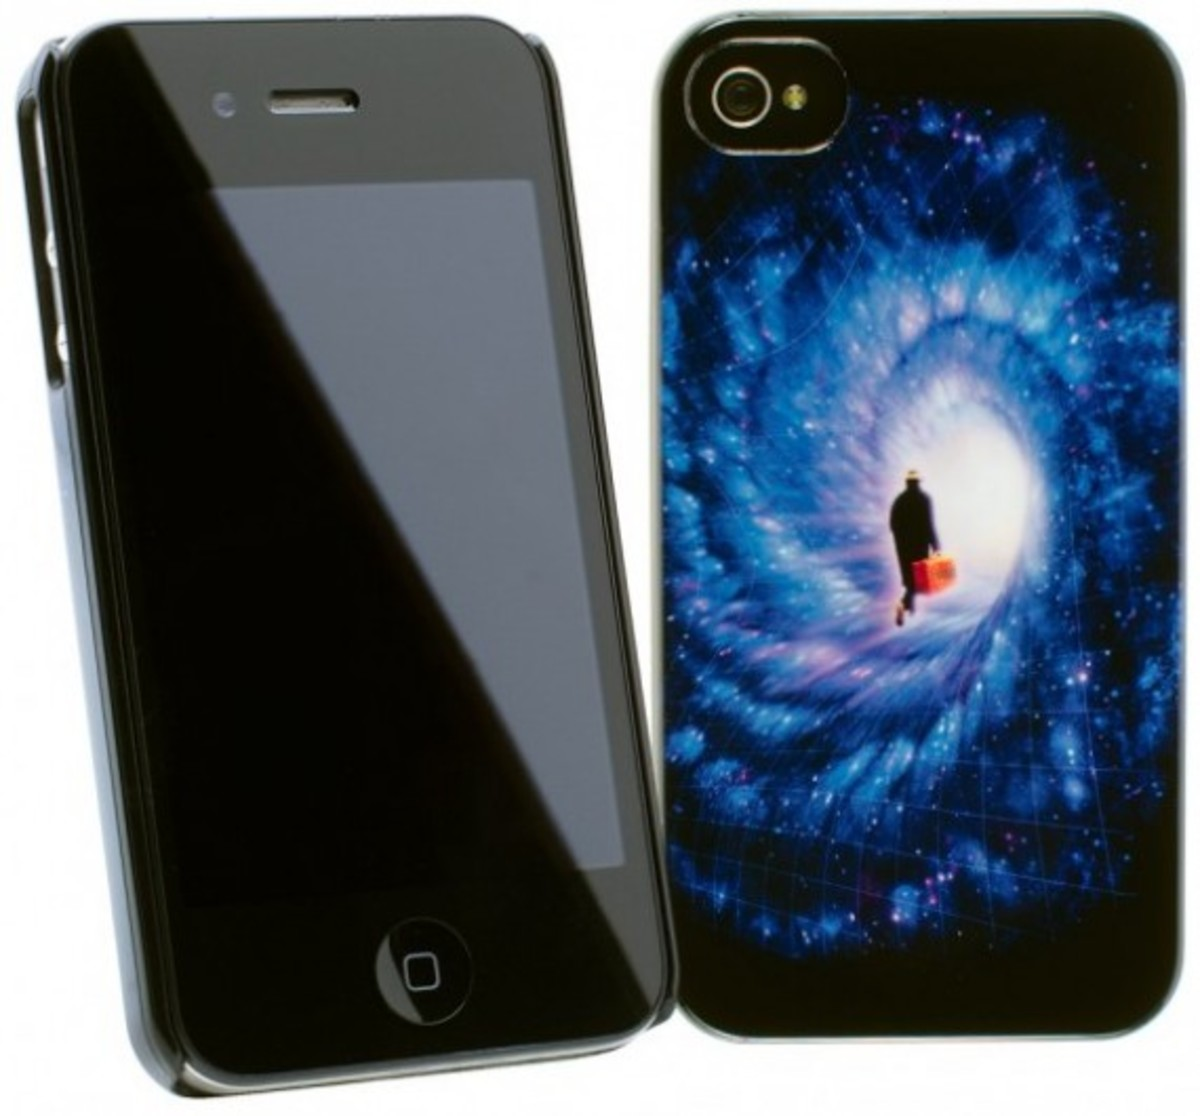 imaginary-foundation-iphone-case-03